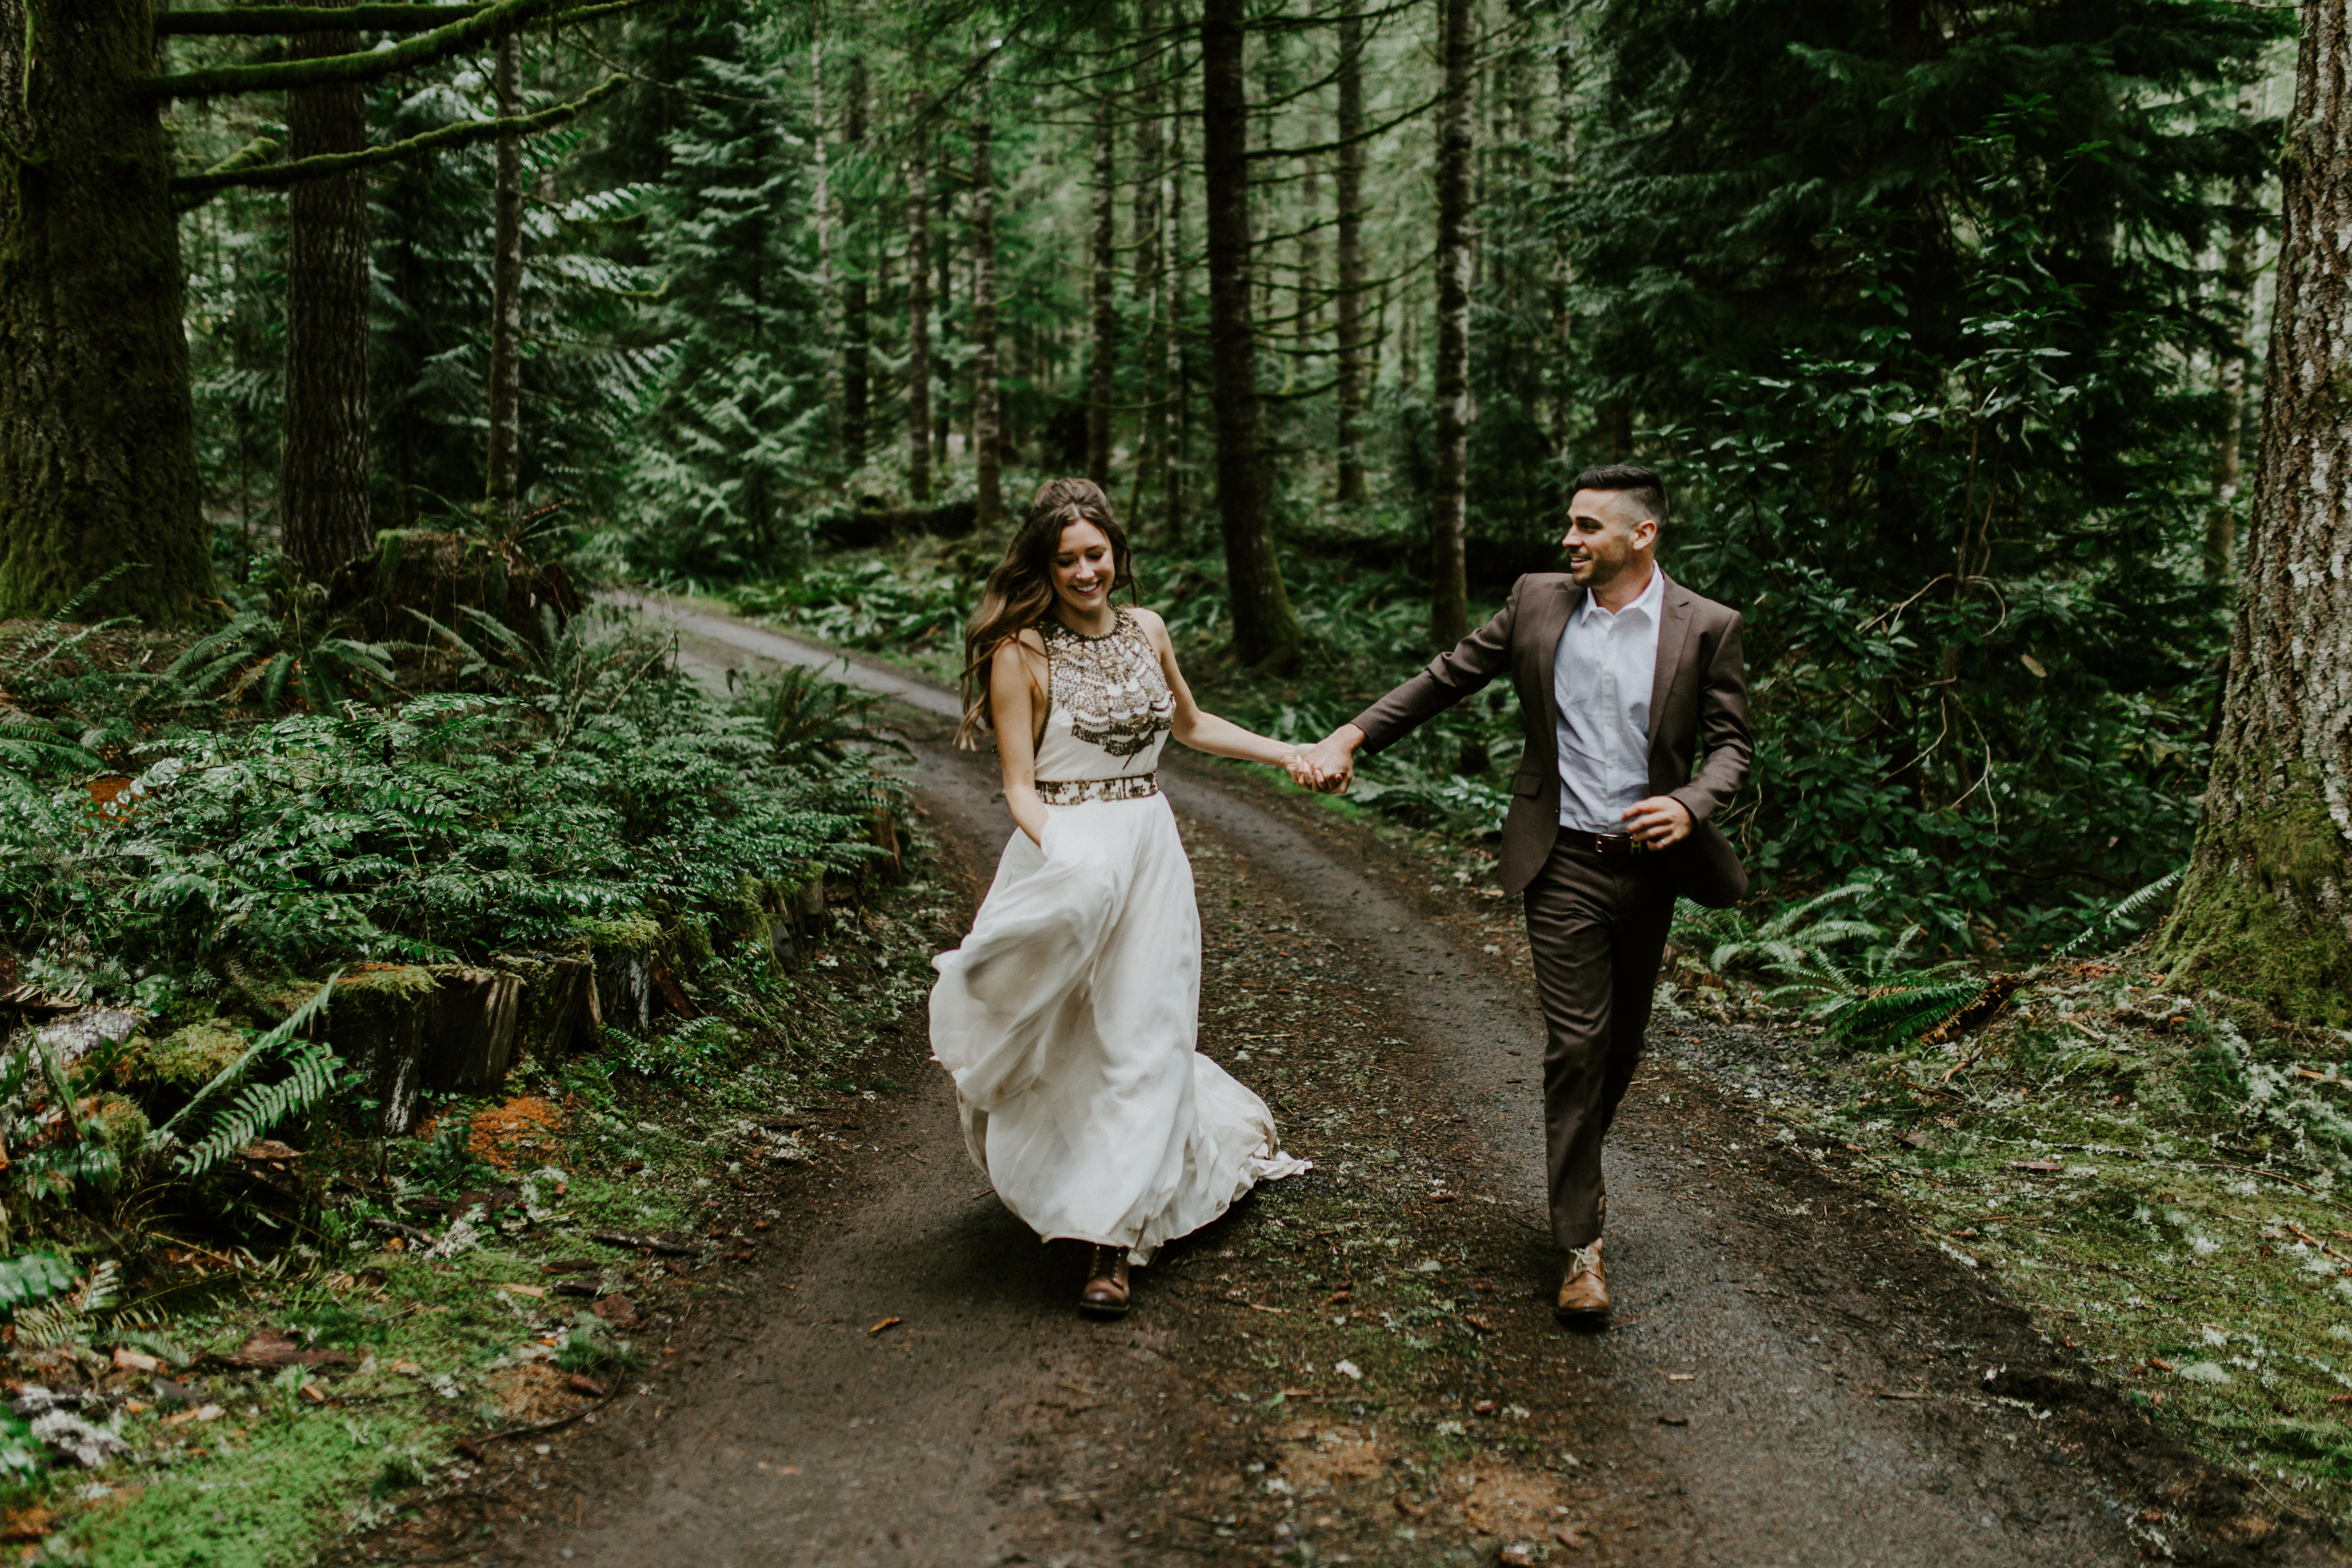 A couple runs down a path after their elopement.